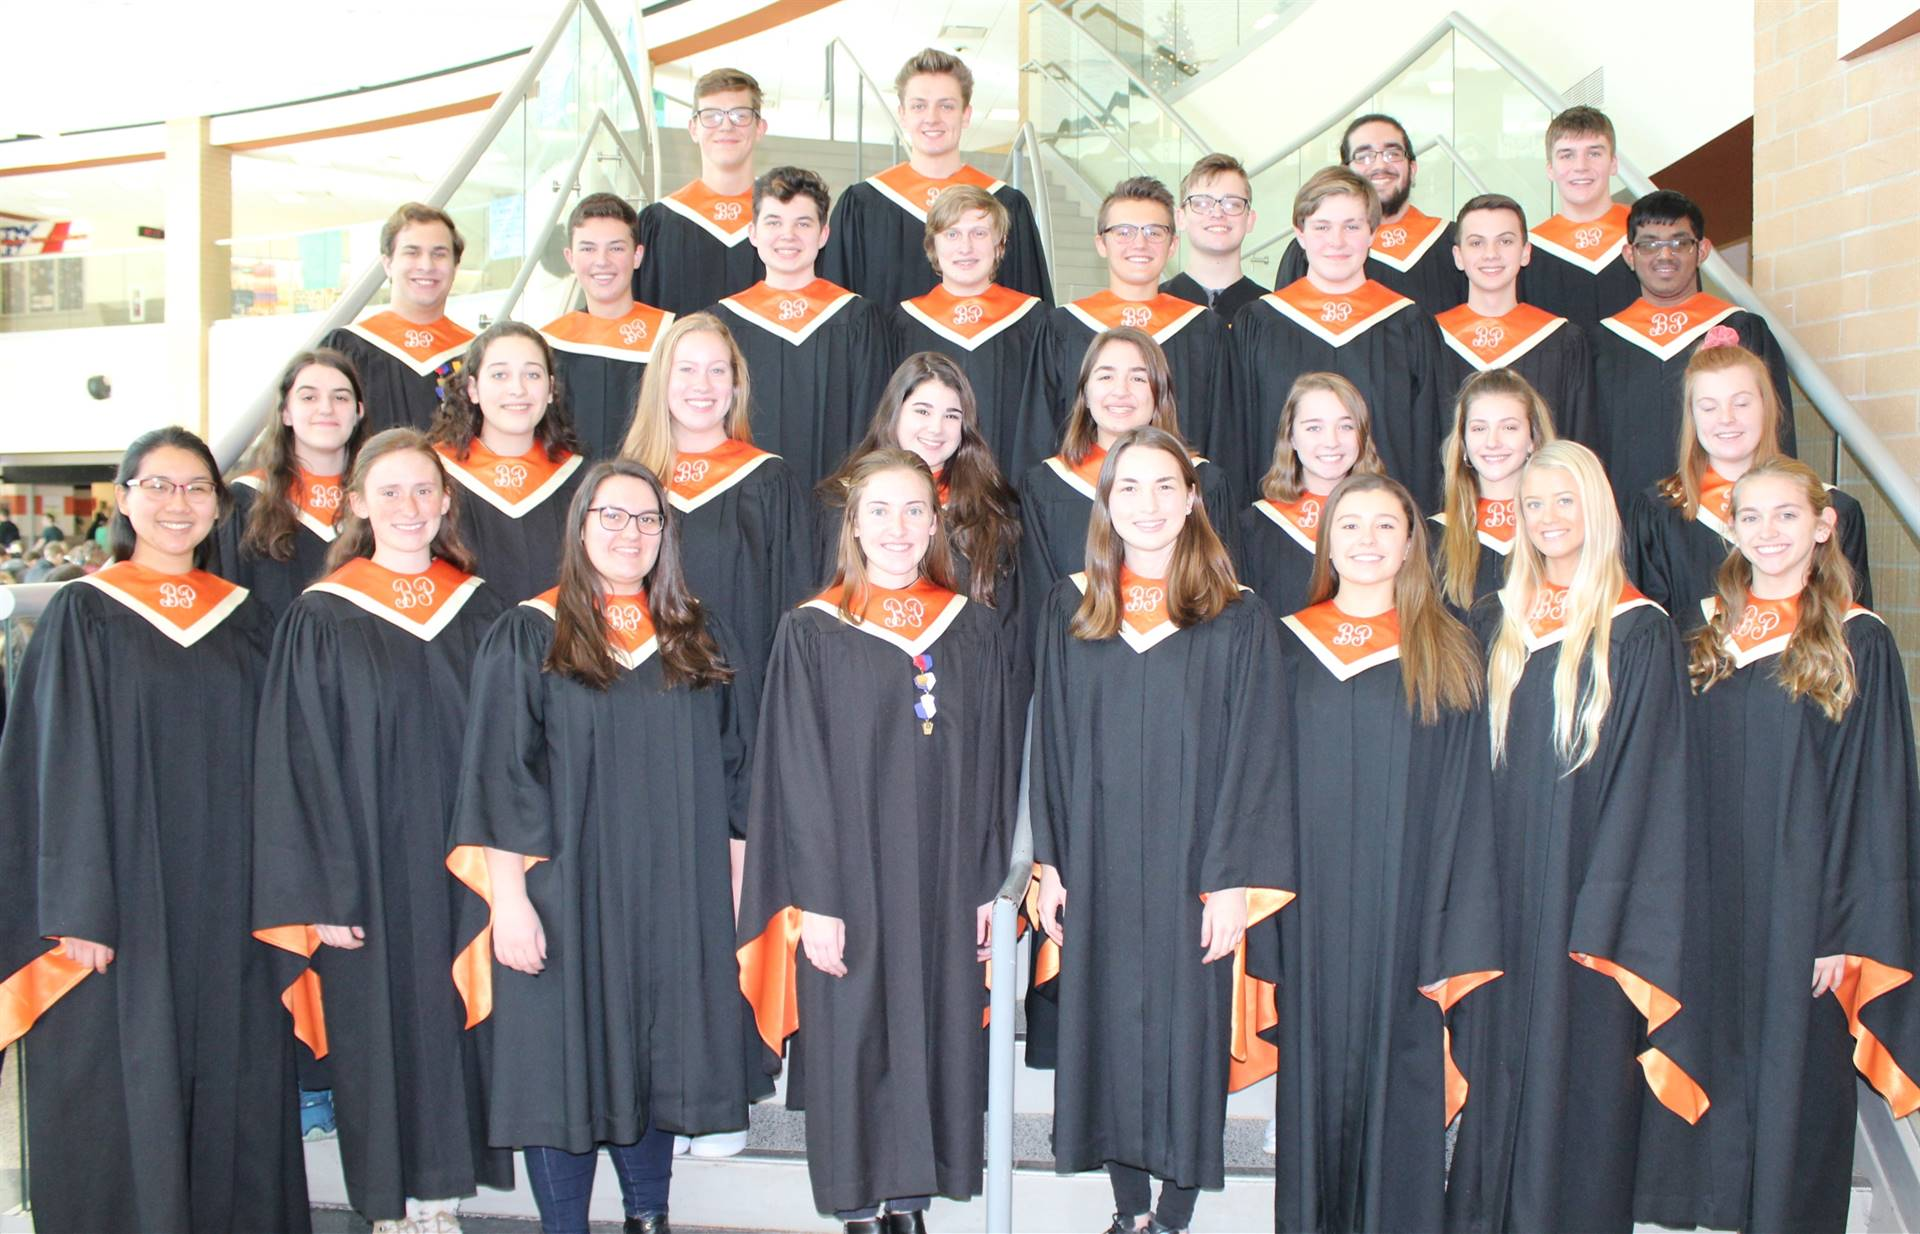 29 of the 30 District Chorus students